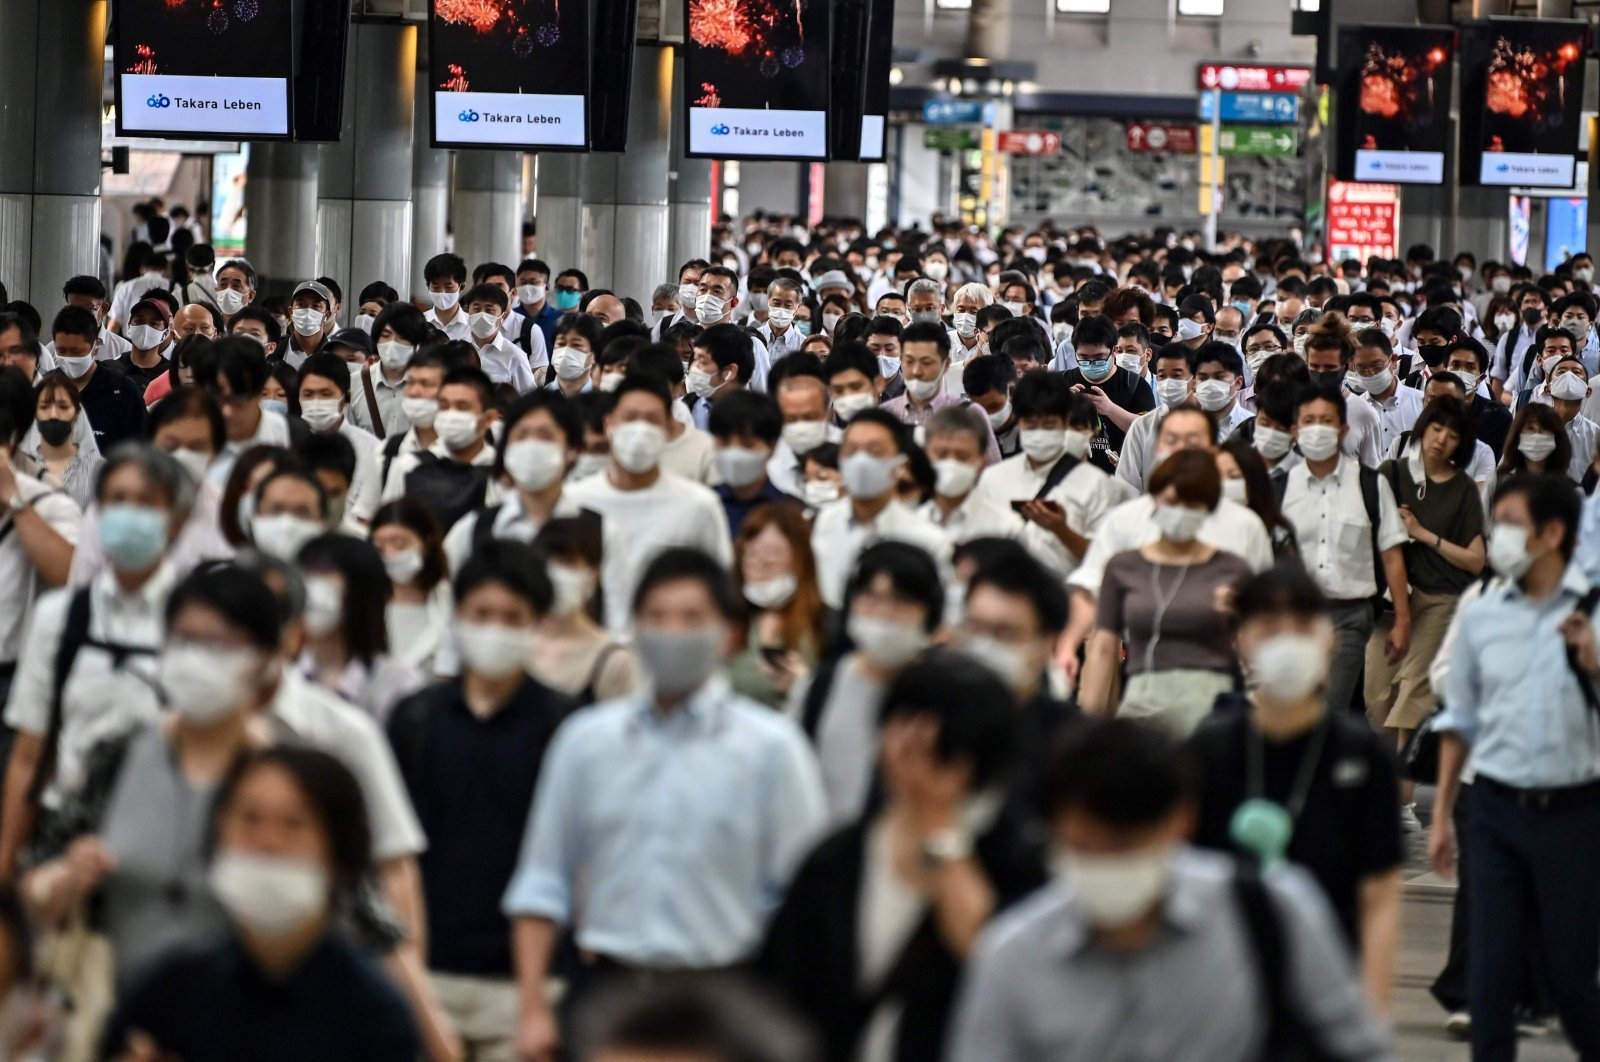 People commute on an early morning in Tokyo, Japan, Aug. 17, 2020. (AFP Photo)